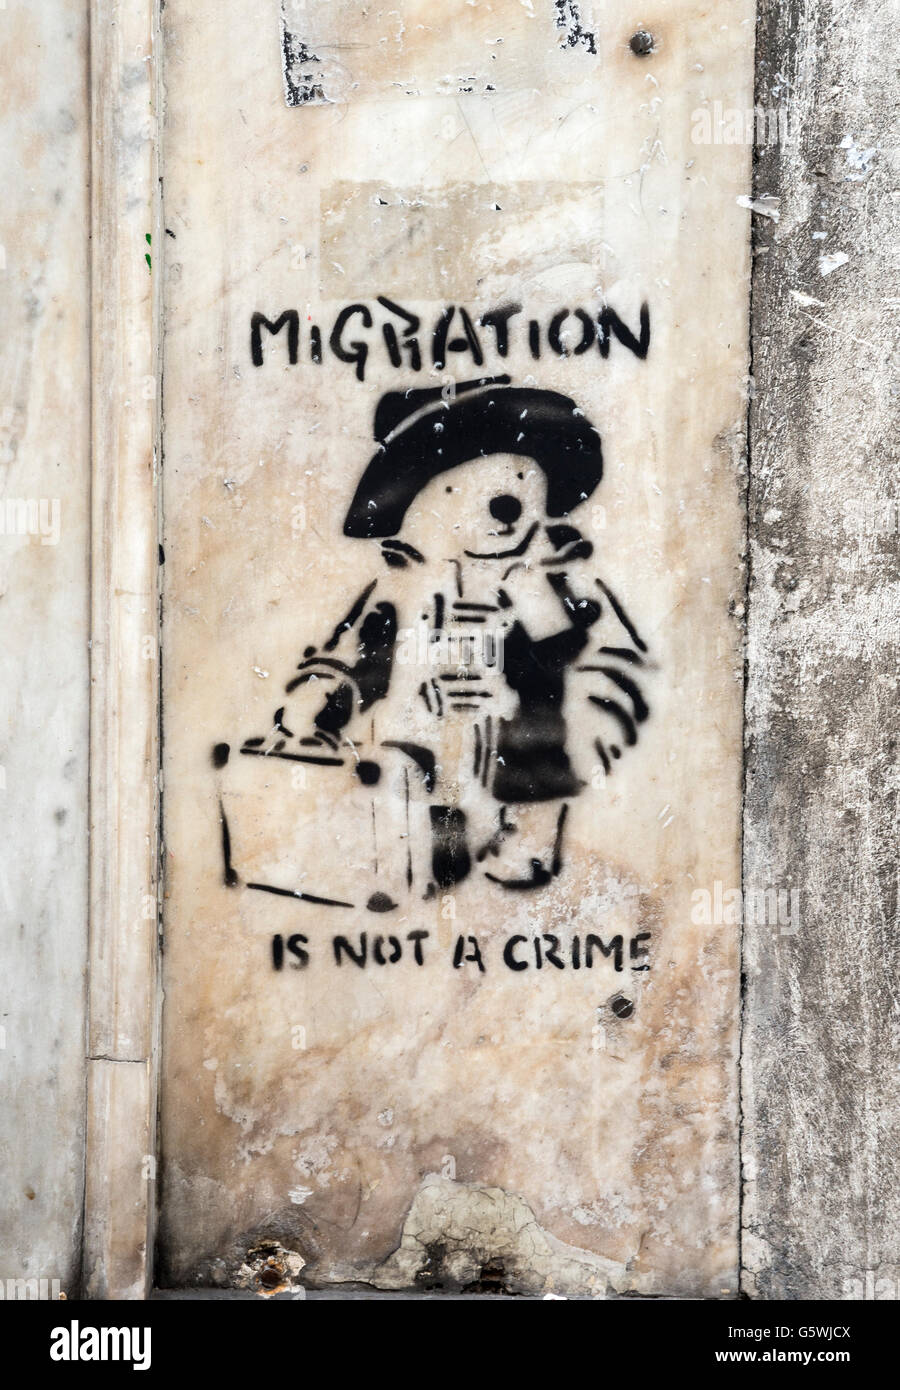 Street art social comment on migration in the Psyrri district of central Athens, Greece - Stock Image